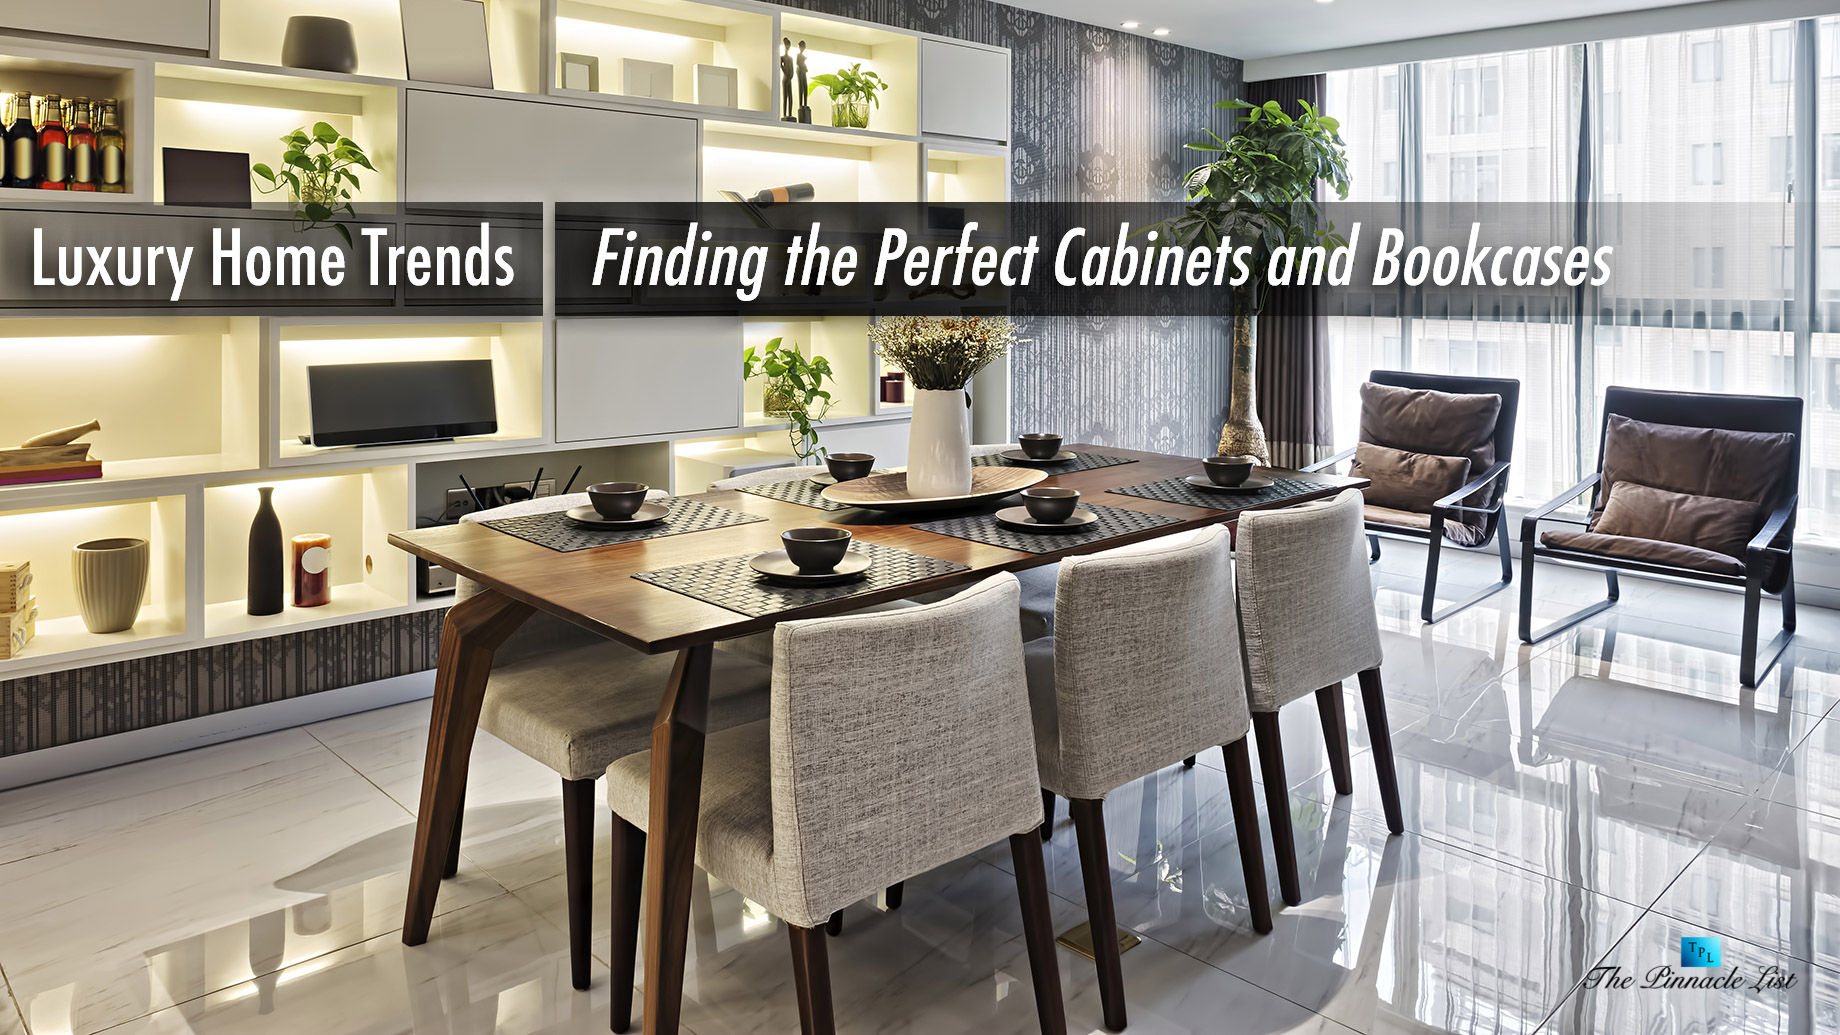 Luxury Home Trends – Finding the Perfect Cabinets and Bookcases